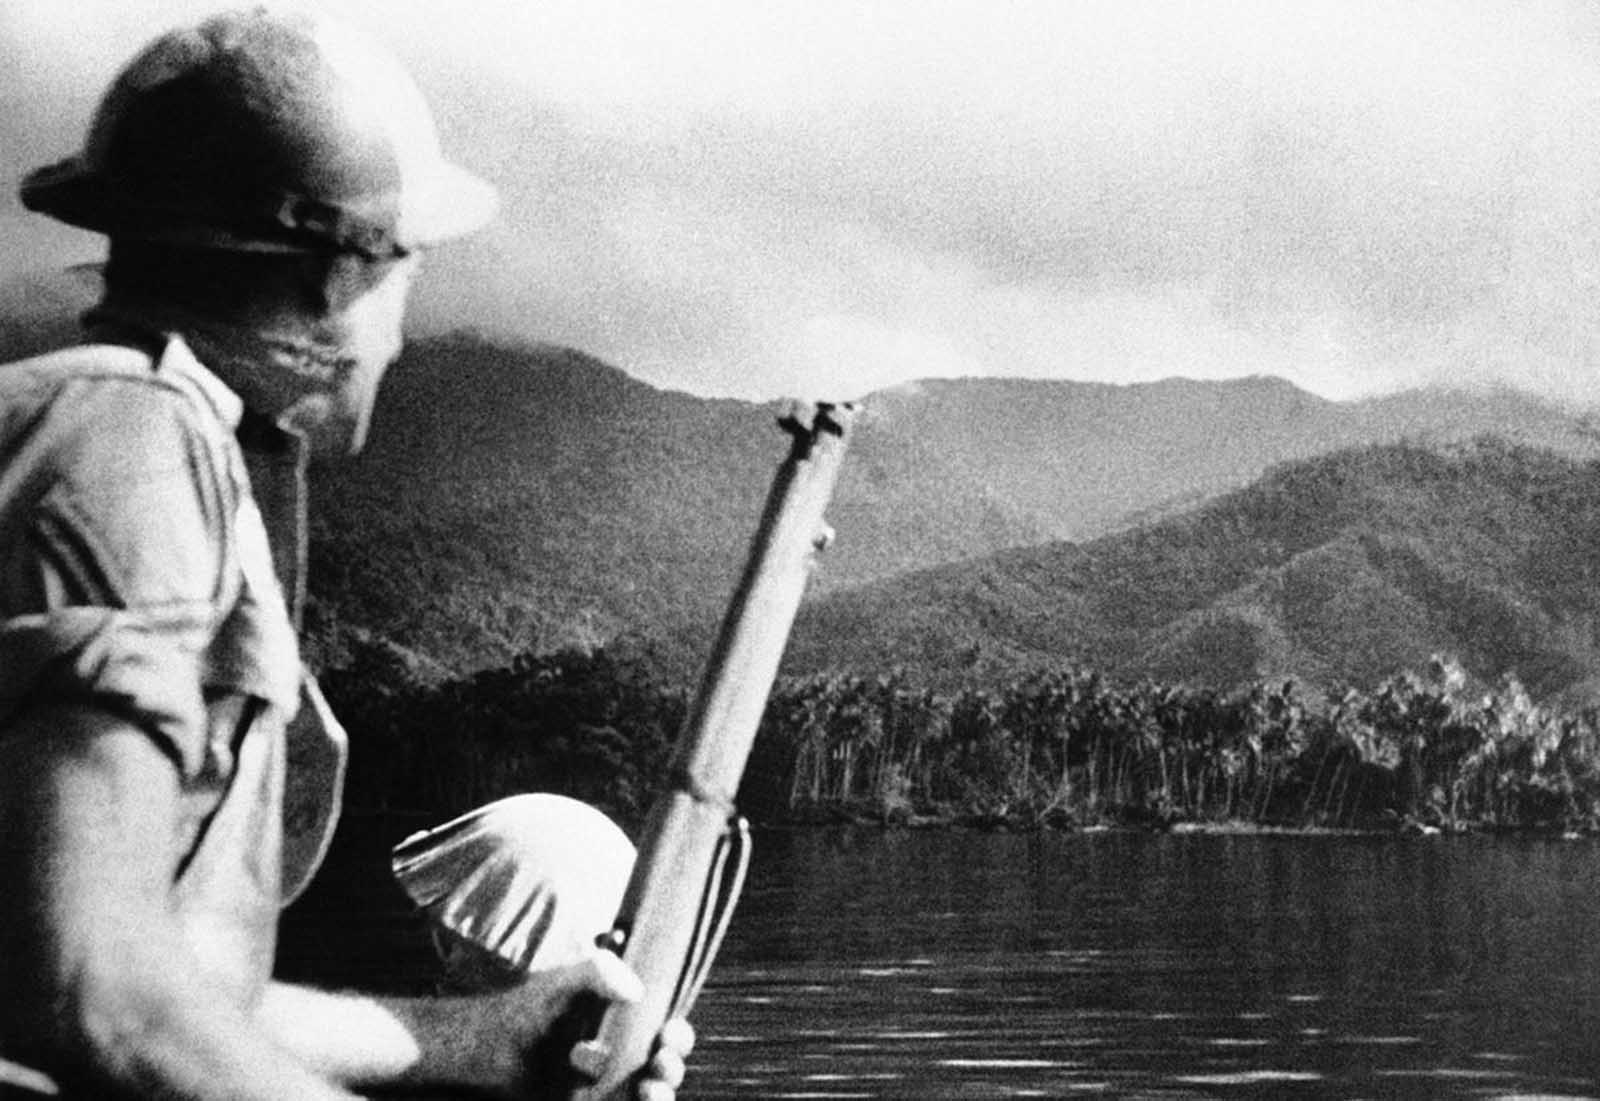 A helmeted Australian soldier, rifle in hand, looks out over a typical New Guinea landscape in the vicinity of Milne Bay on October 31, 1942, where an earlier Japanese attempt at invasion was defeated by the Australian defenders.